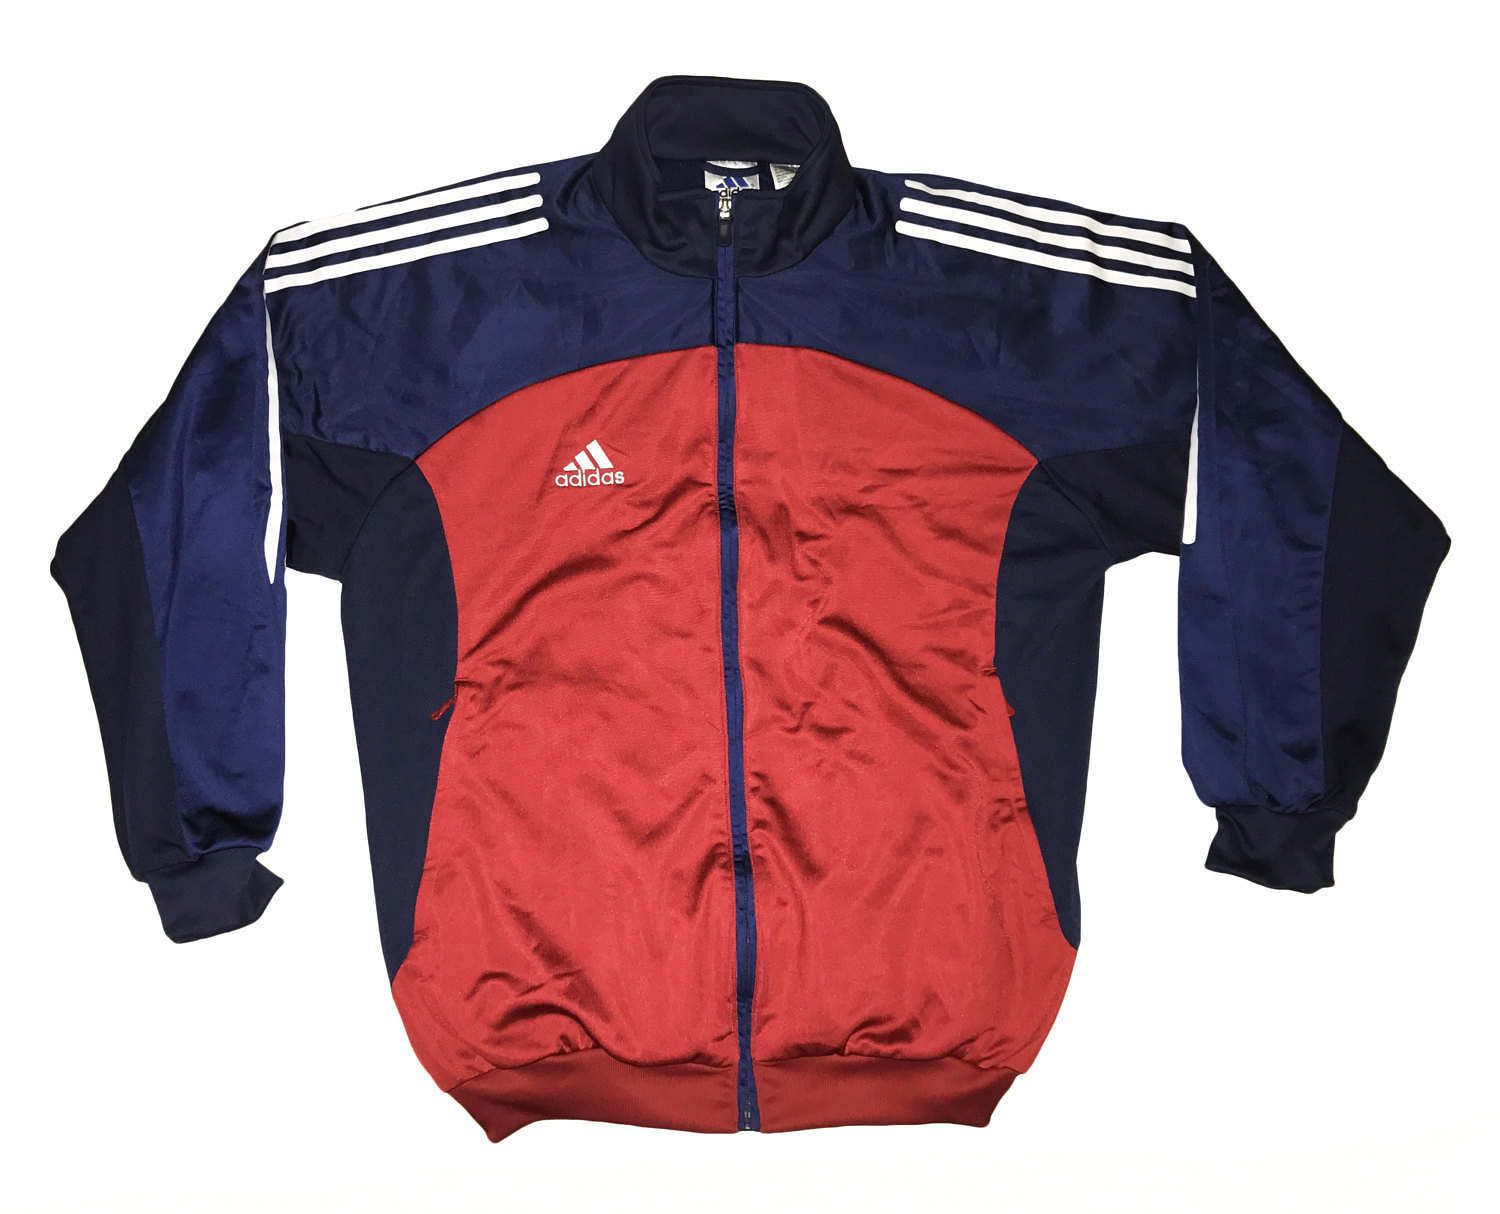 2cfb2f319cc6 Vintage 90s Adidas Tracksuit top jacket Color Block Blue Red White Size M  D6 by VapeoVintage on Etsy